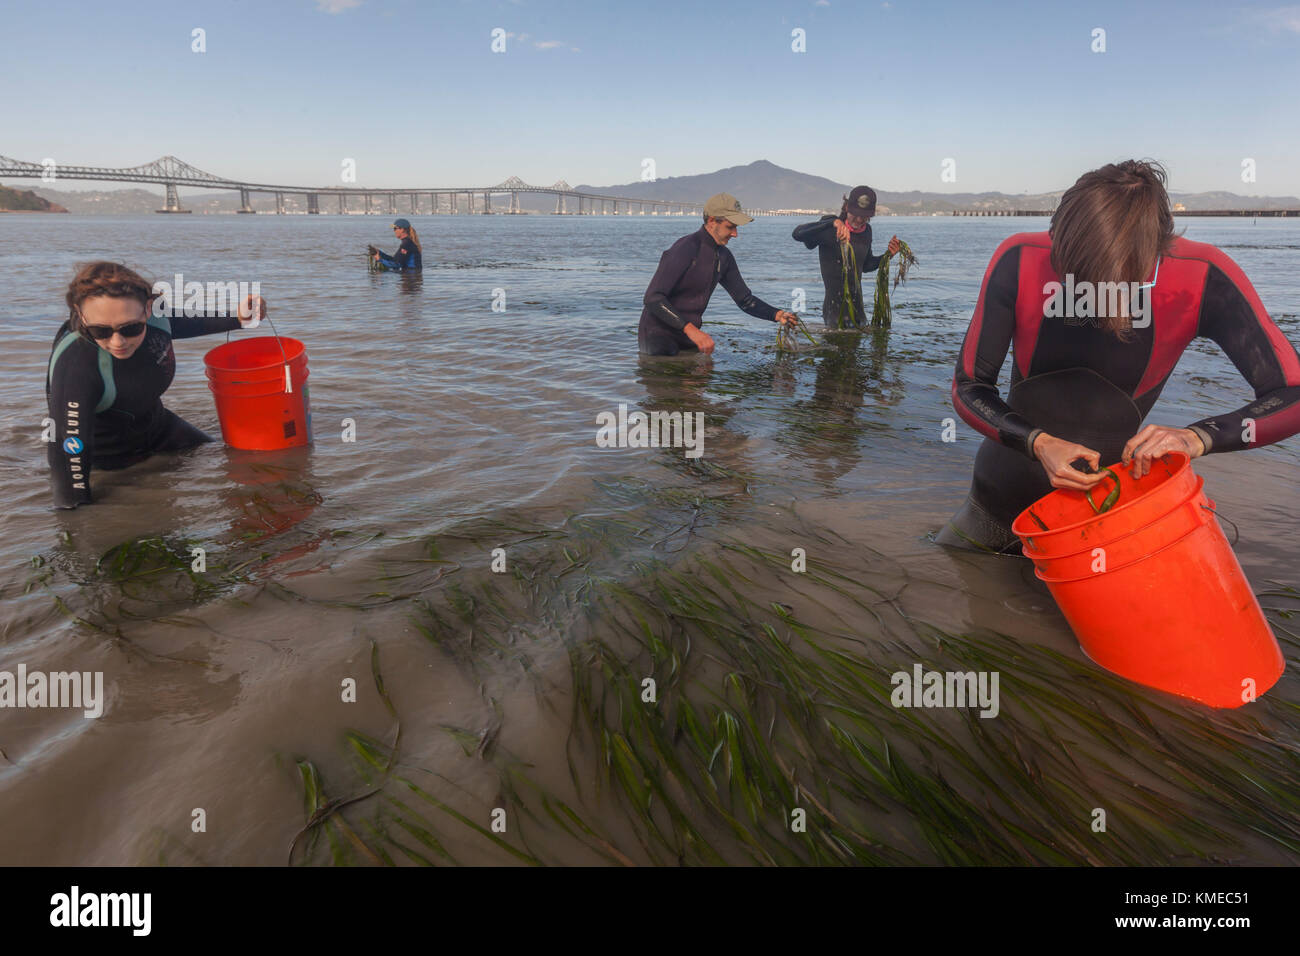 Five people collecting eelgrass for restoration in bay at Point Molate, California, USA - Stock Image